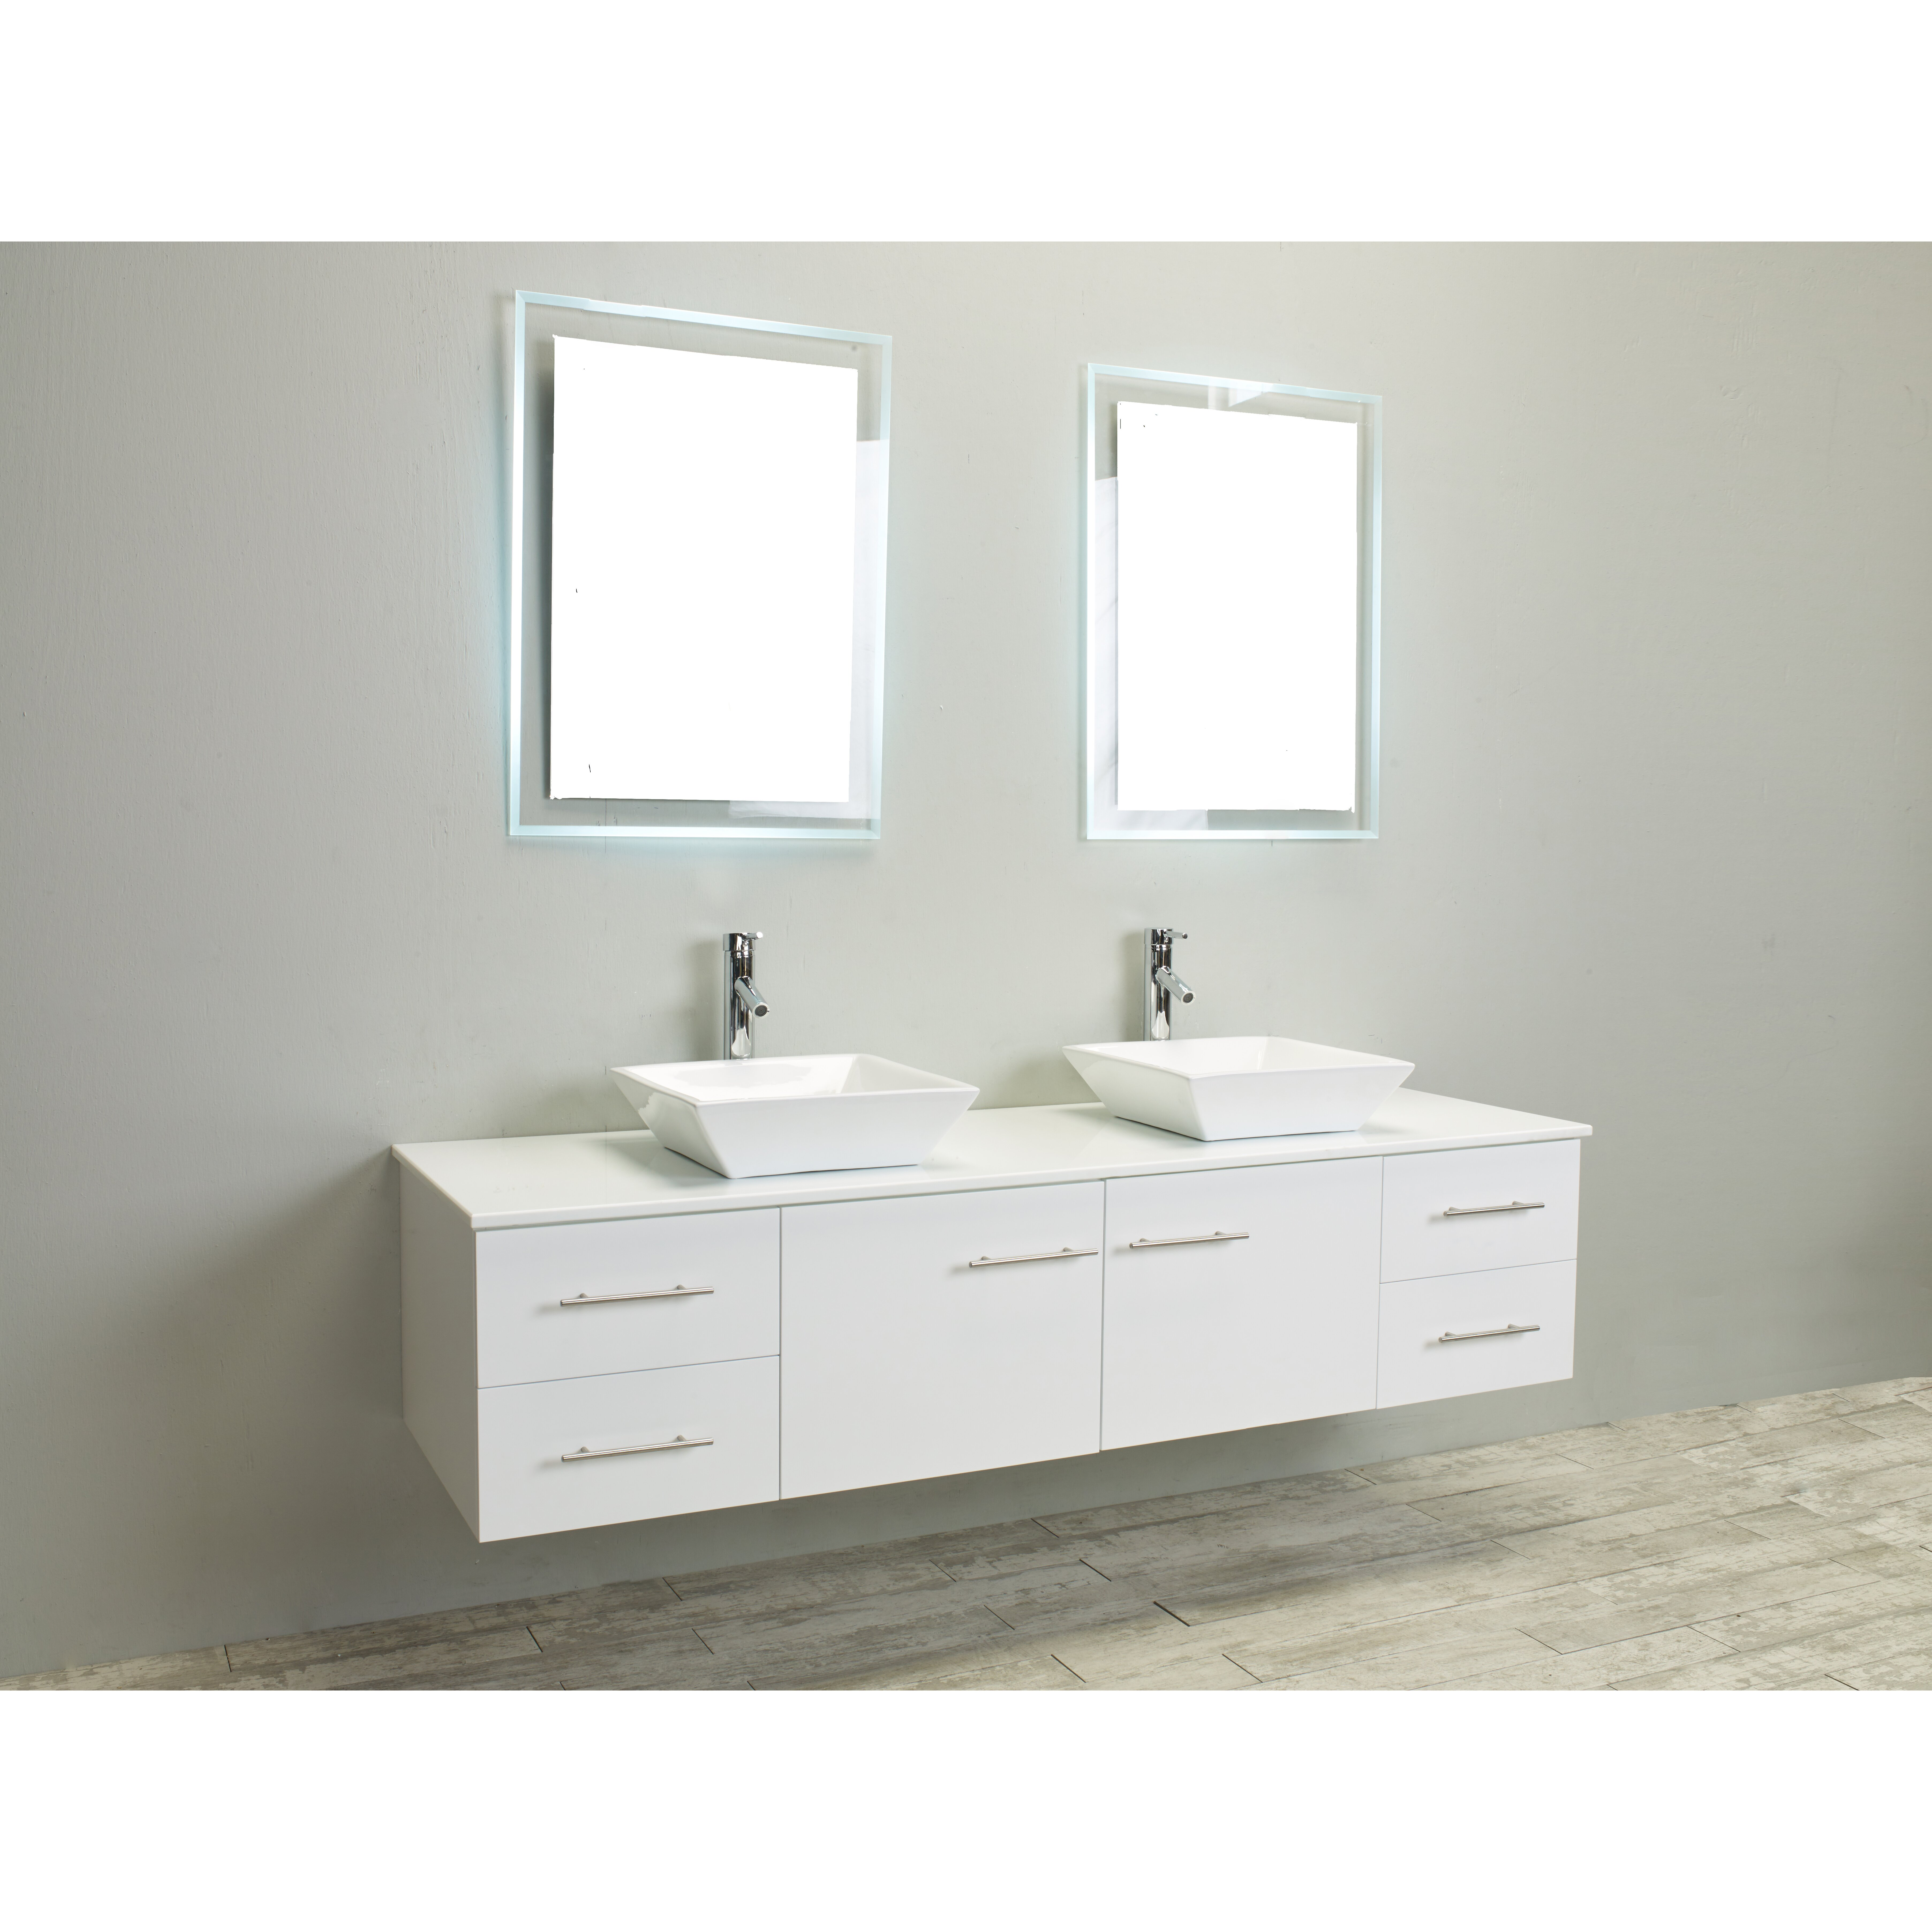 Eviva totti wave 60 inch white modern double sink bathroom for Bathroom sinks and vanities